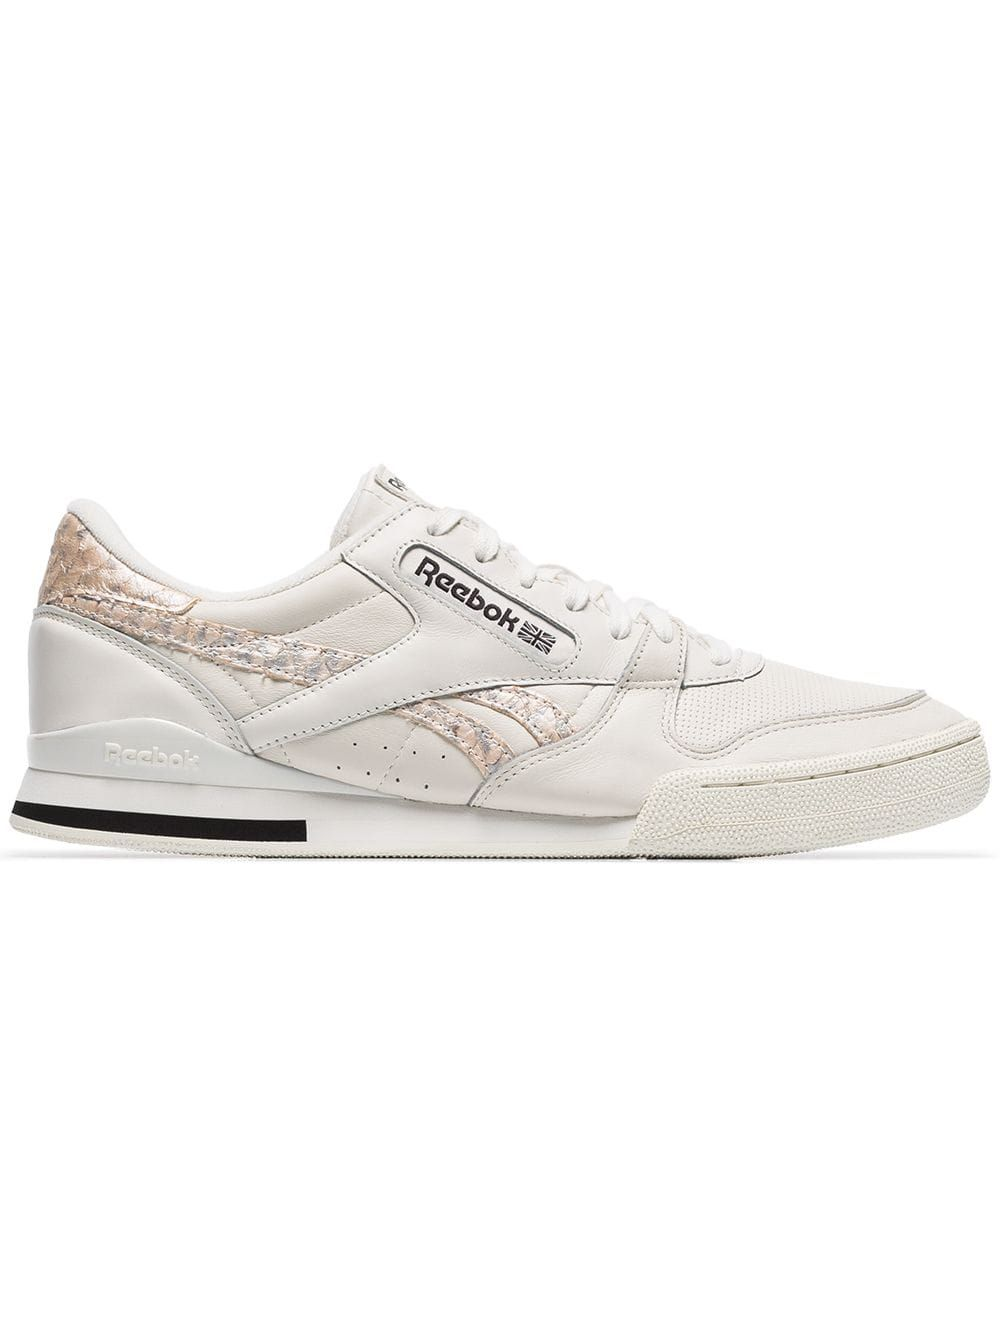 Reebok White Phase 1 Low Top Leather Sneakers Læder  Leather